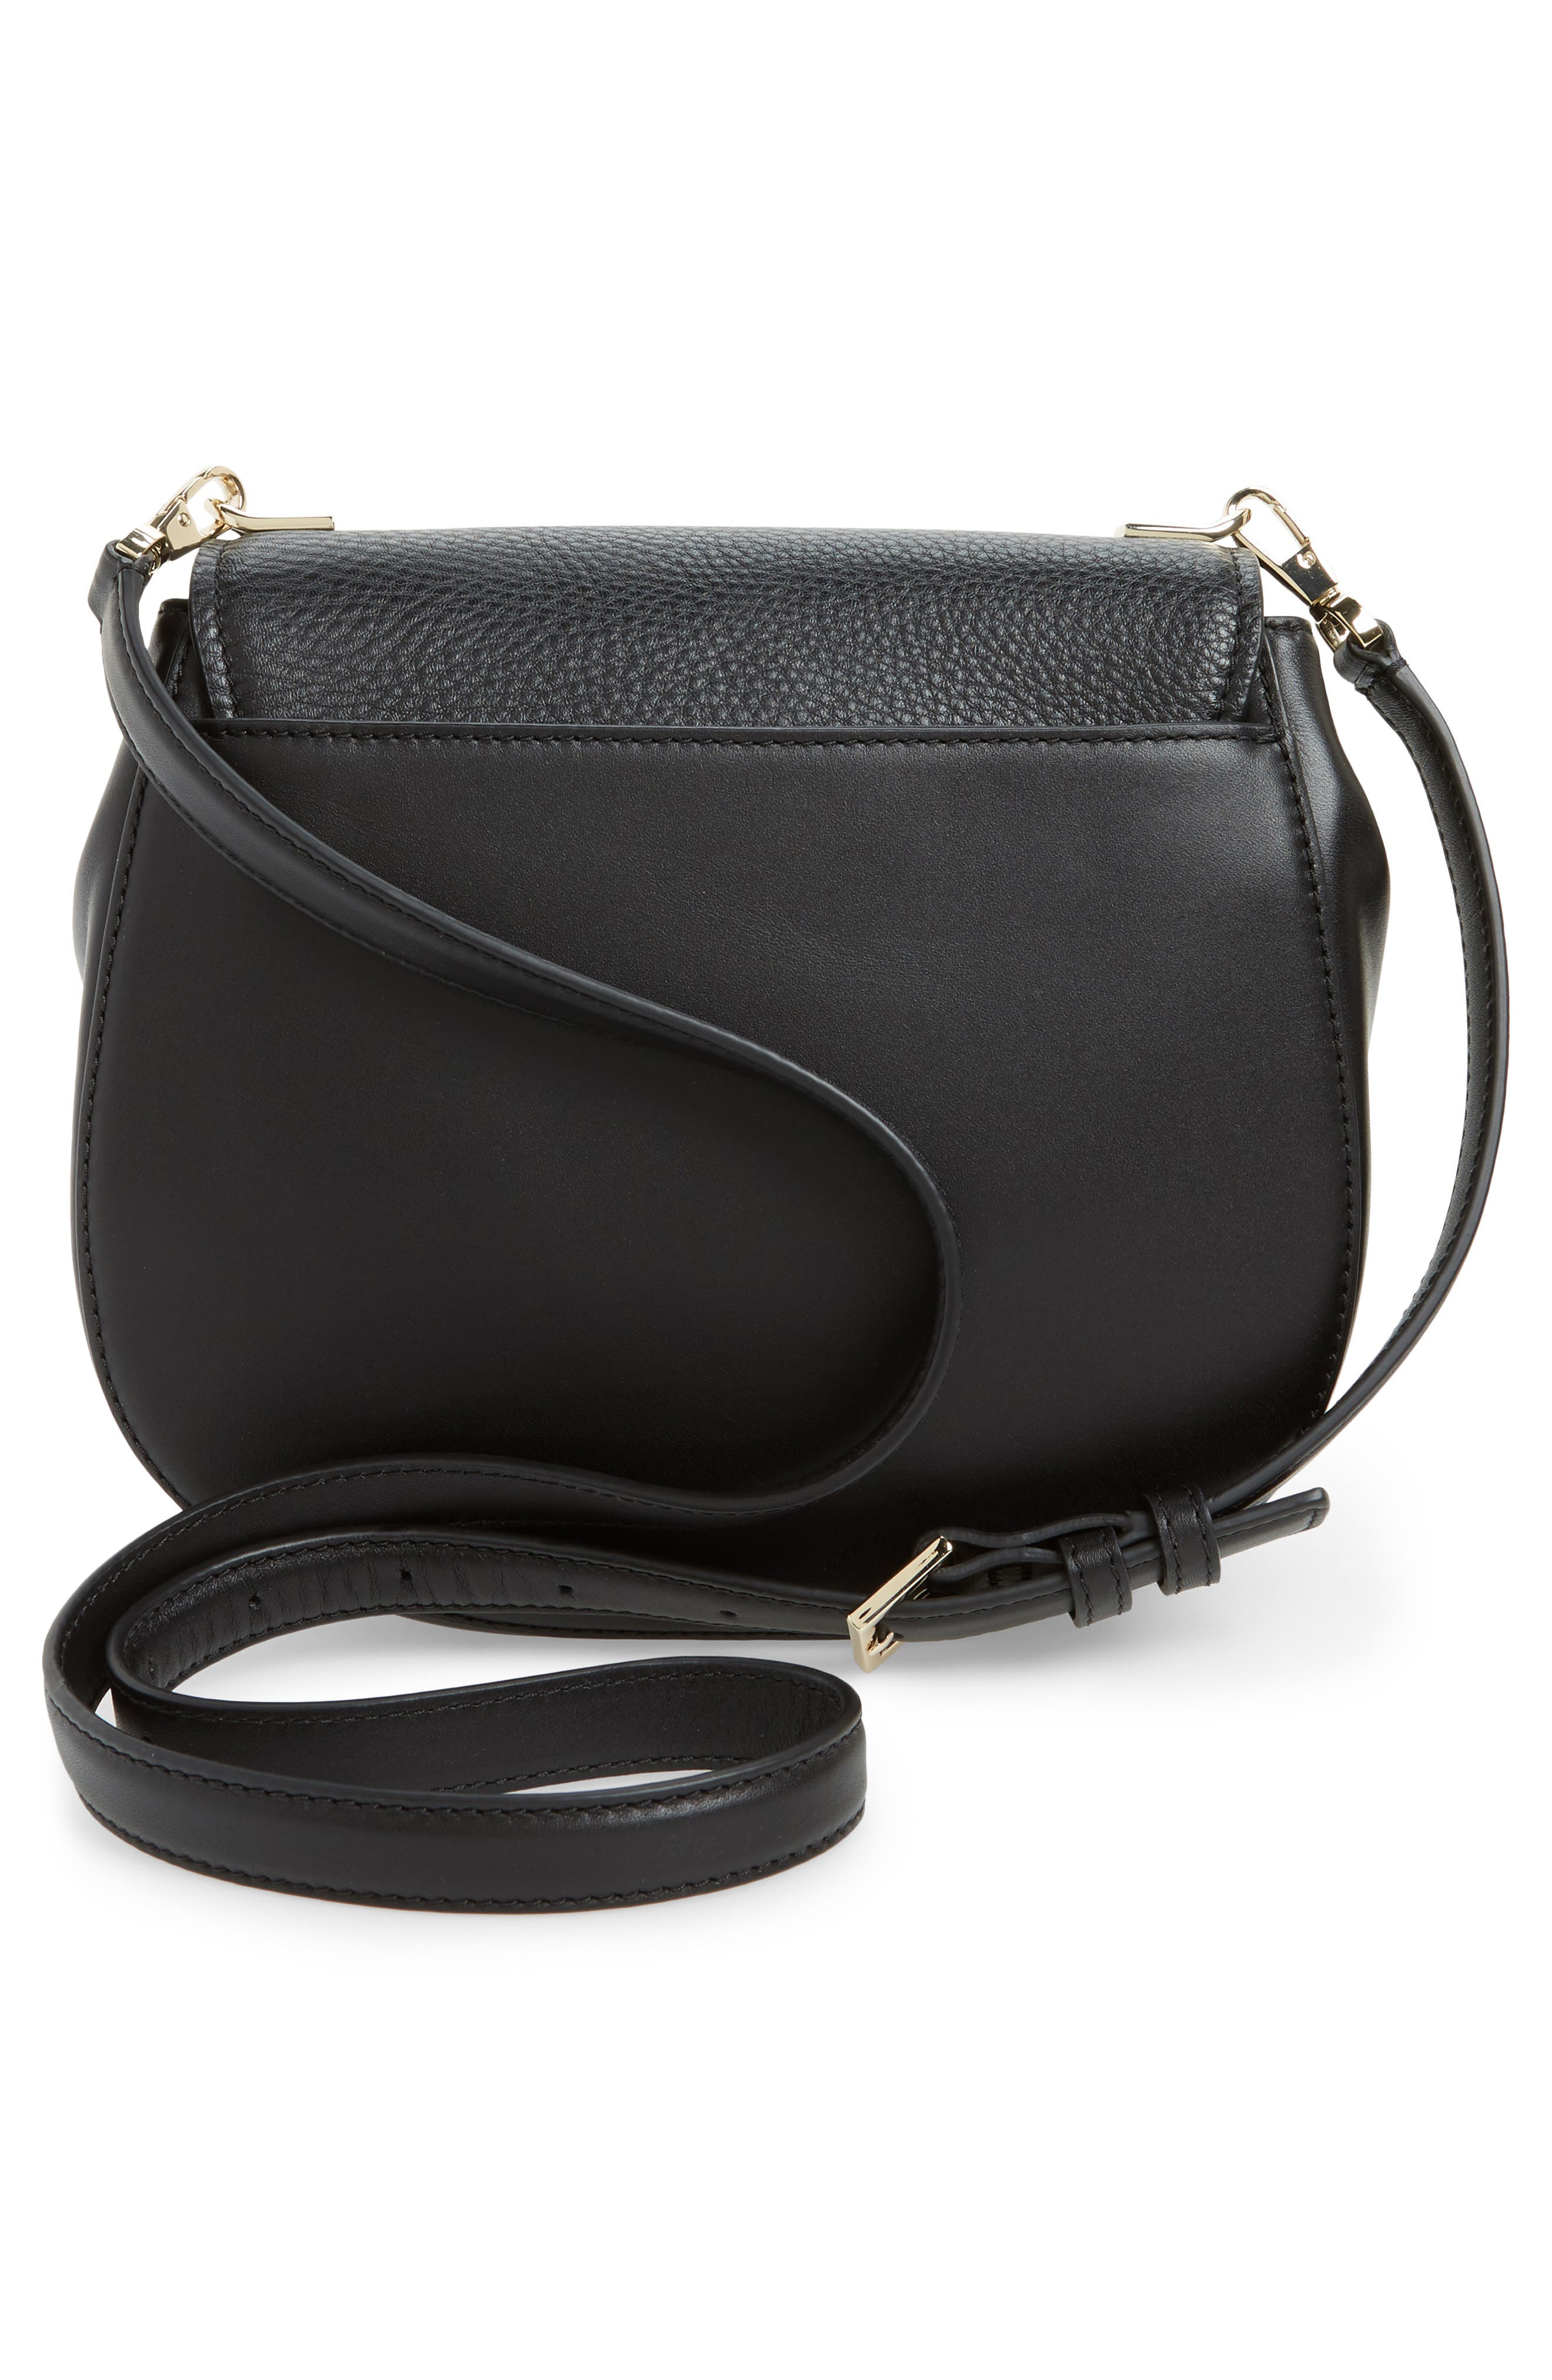 madison stewart street - byrdie studded leather crossbody bag,                             Alternate thumbnail 3, color,                             001